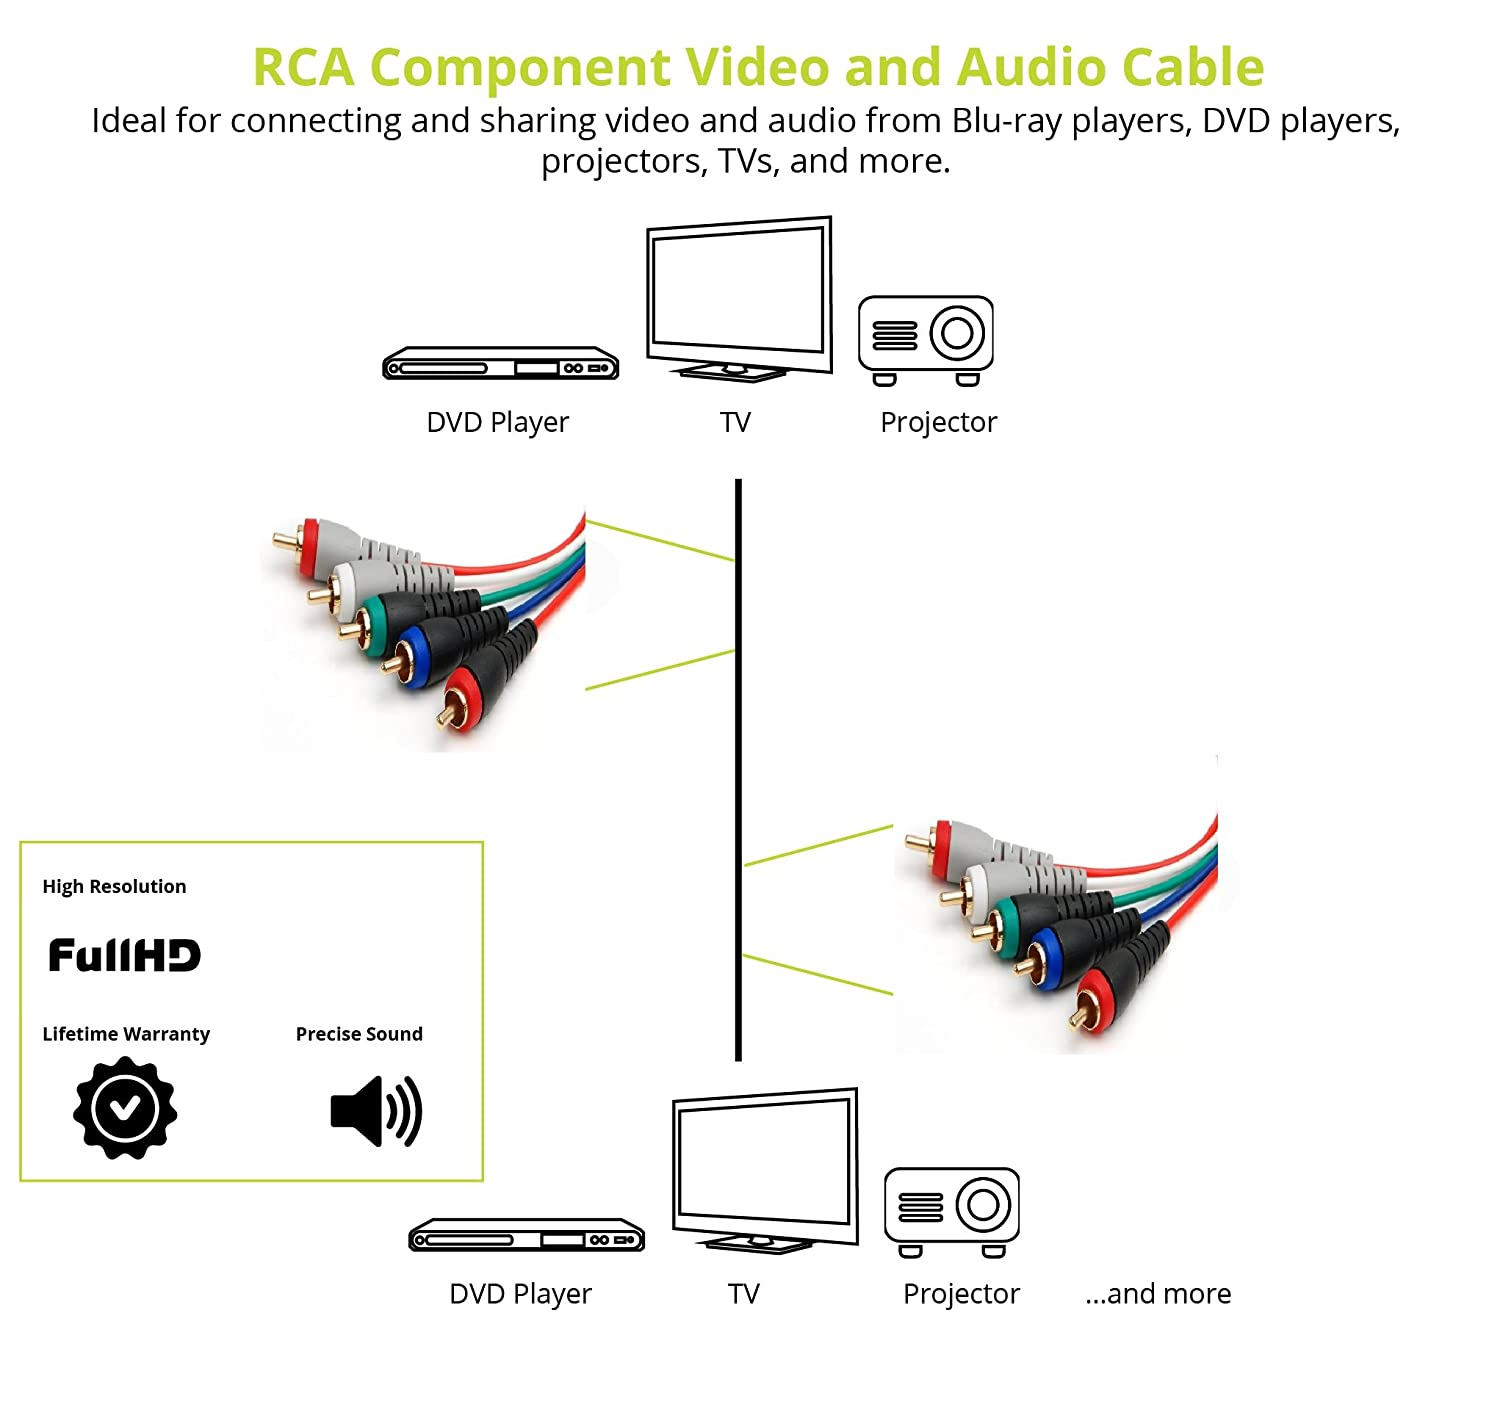 amazon com: bluerigger 5-rca component video and audio cable (6 feet): home  audio & theater